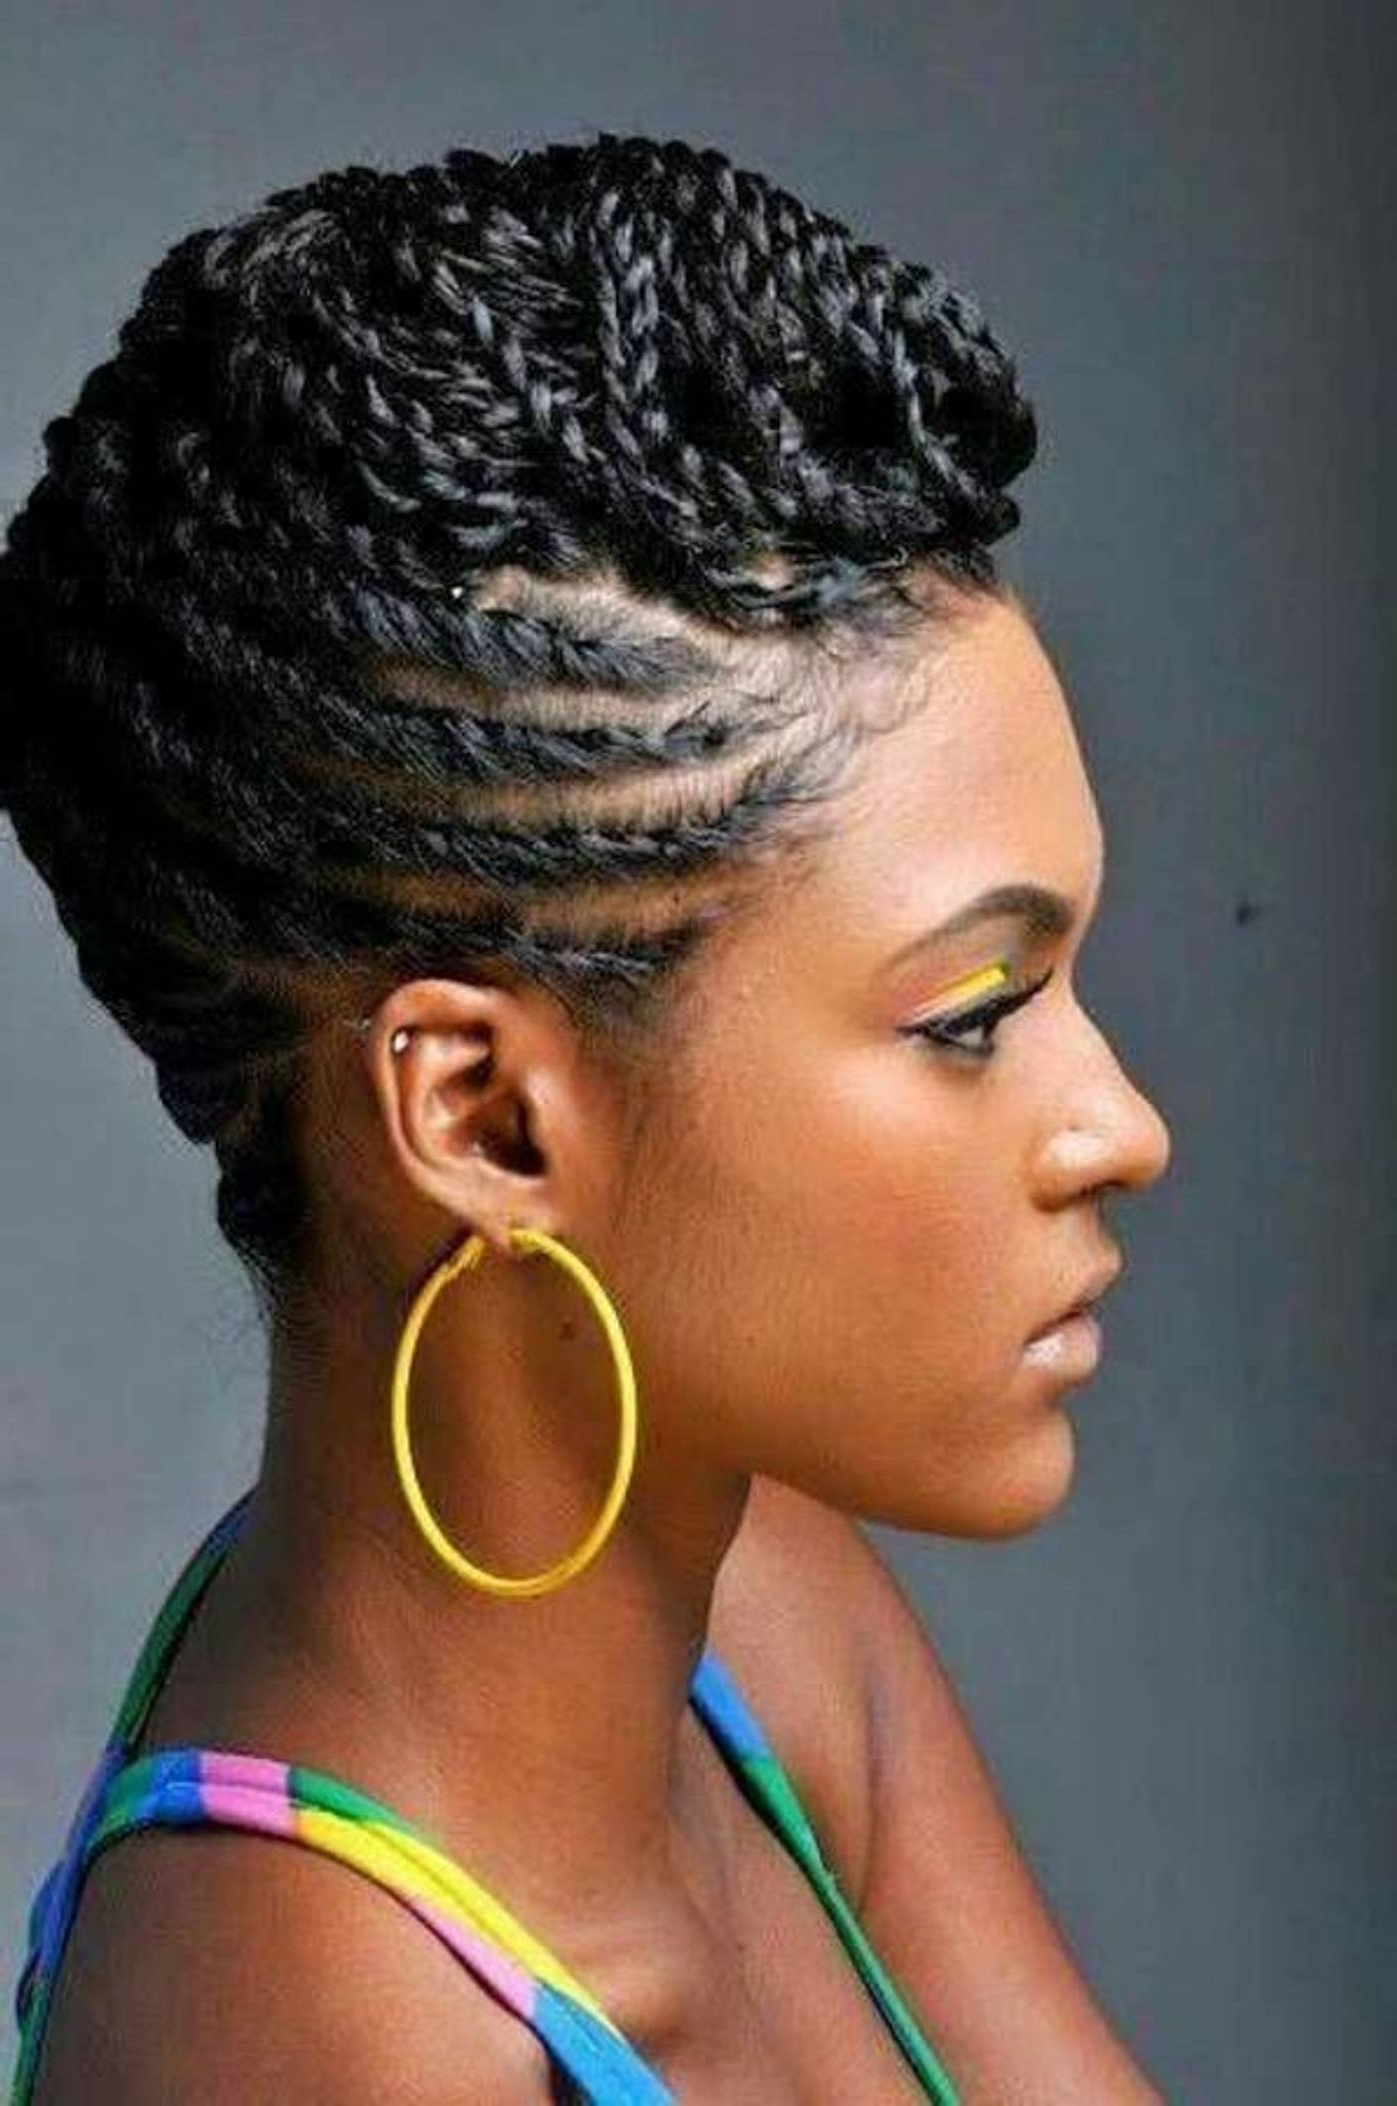 Trendy Braided Hairstyles For Afro Hair In 25 Updo Hairstyles For Black Women (View 8 of 15)